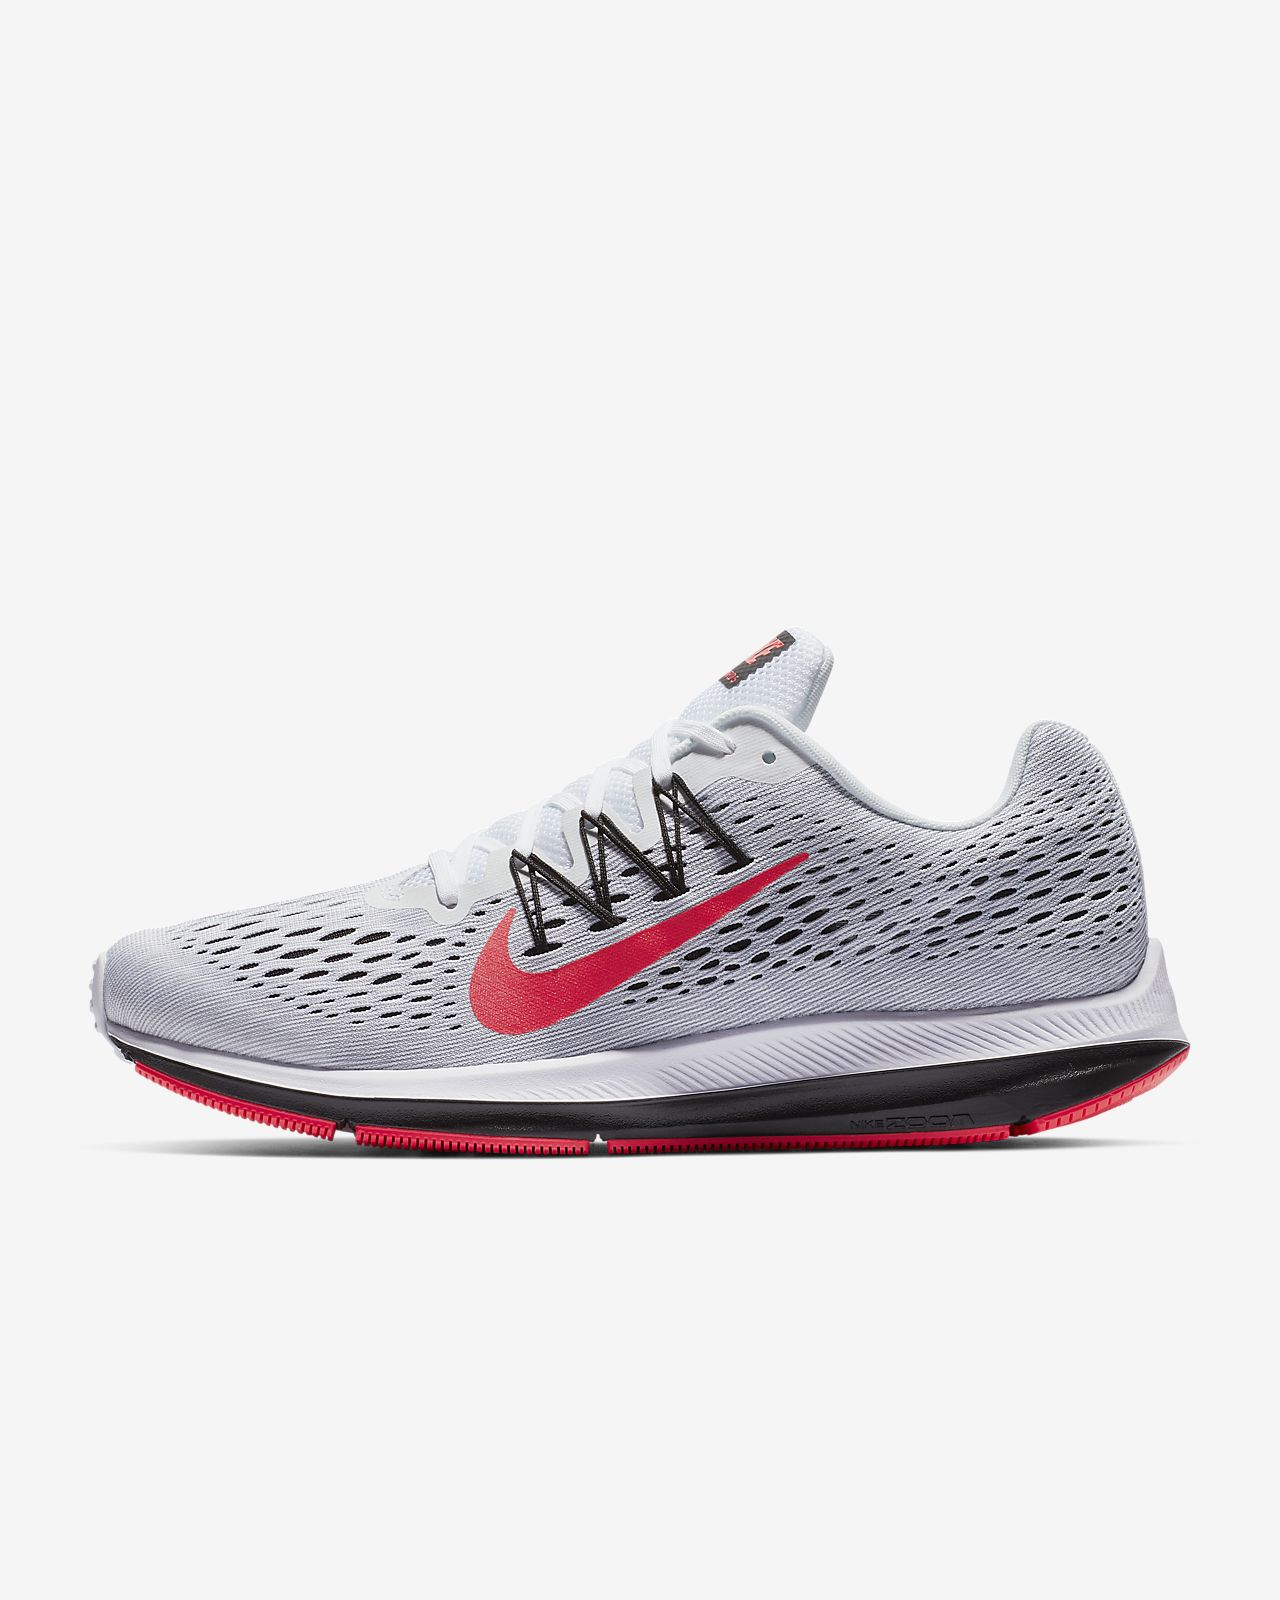 lowest price a92a5 93f68 Nike Air Zoom Winflo 5